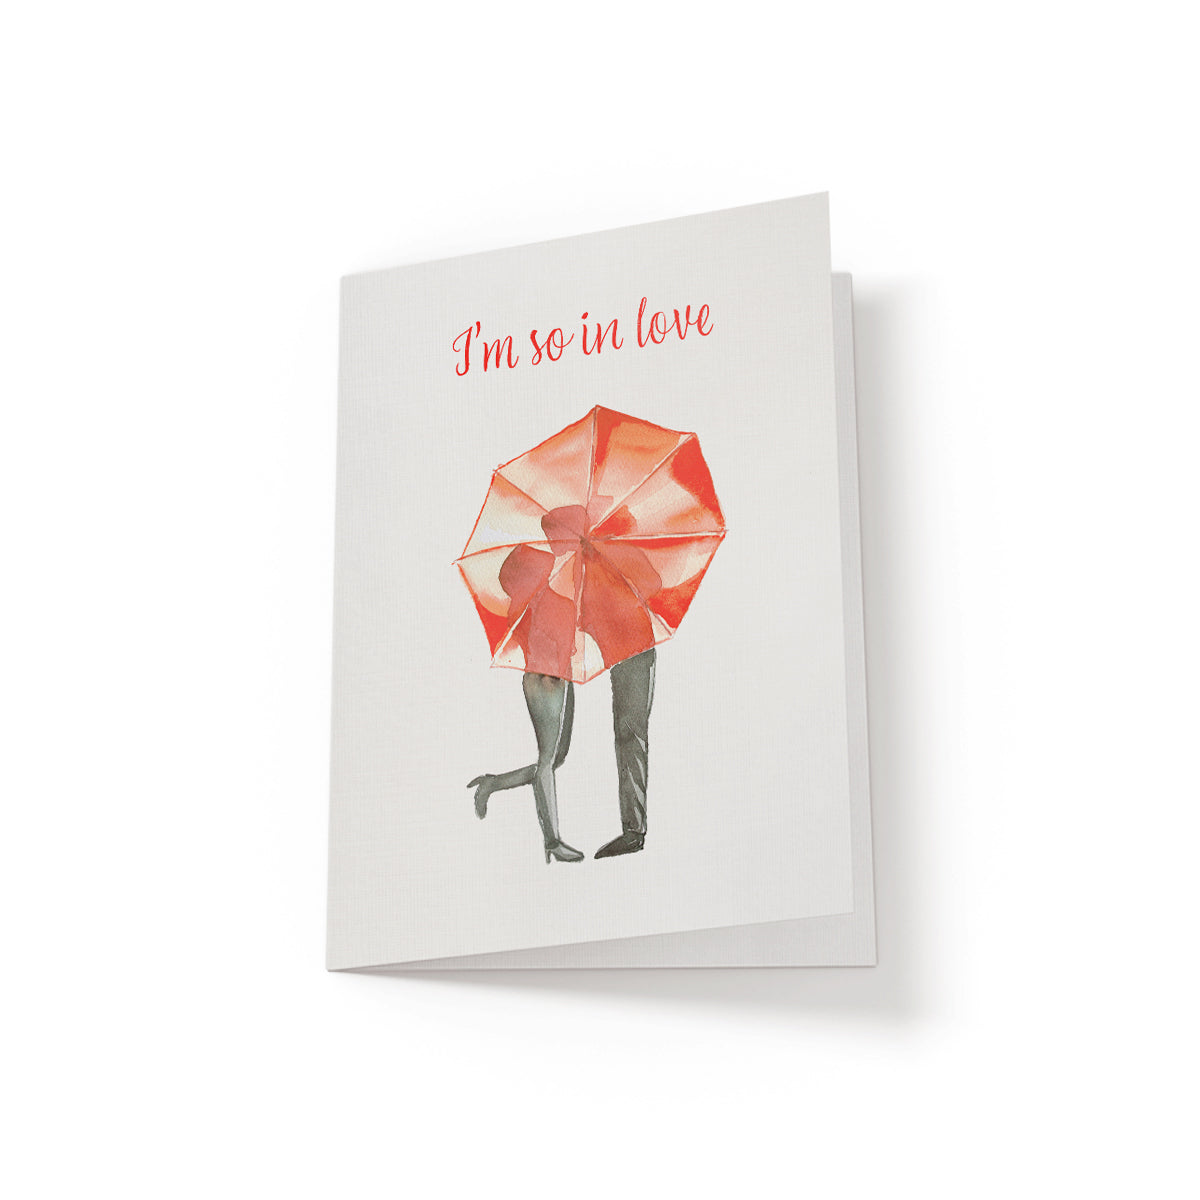 I'm so in love - Greeting Card